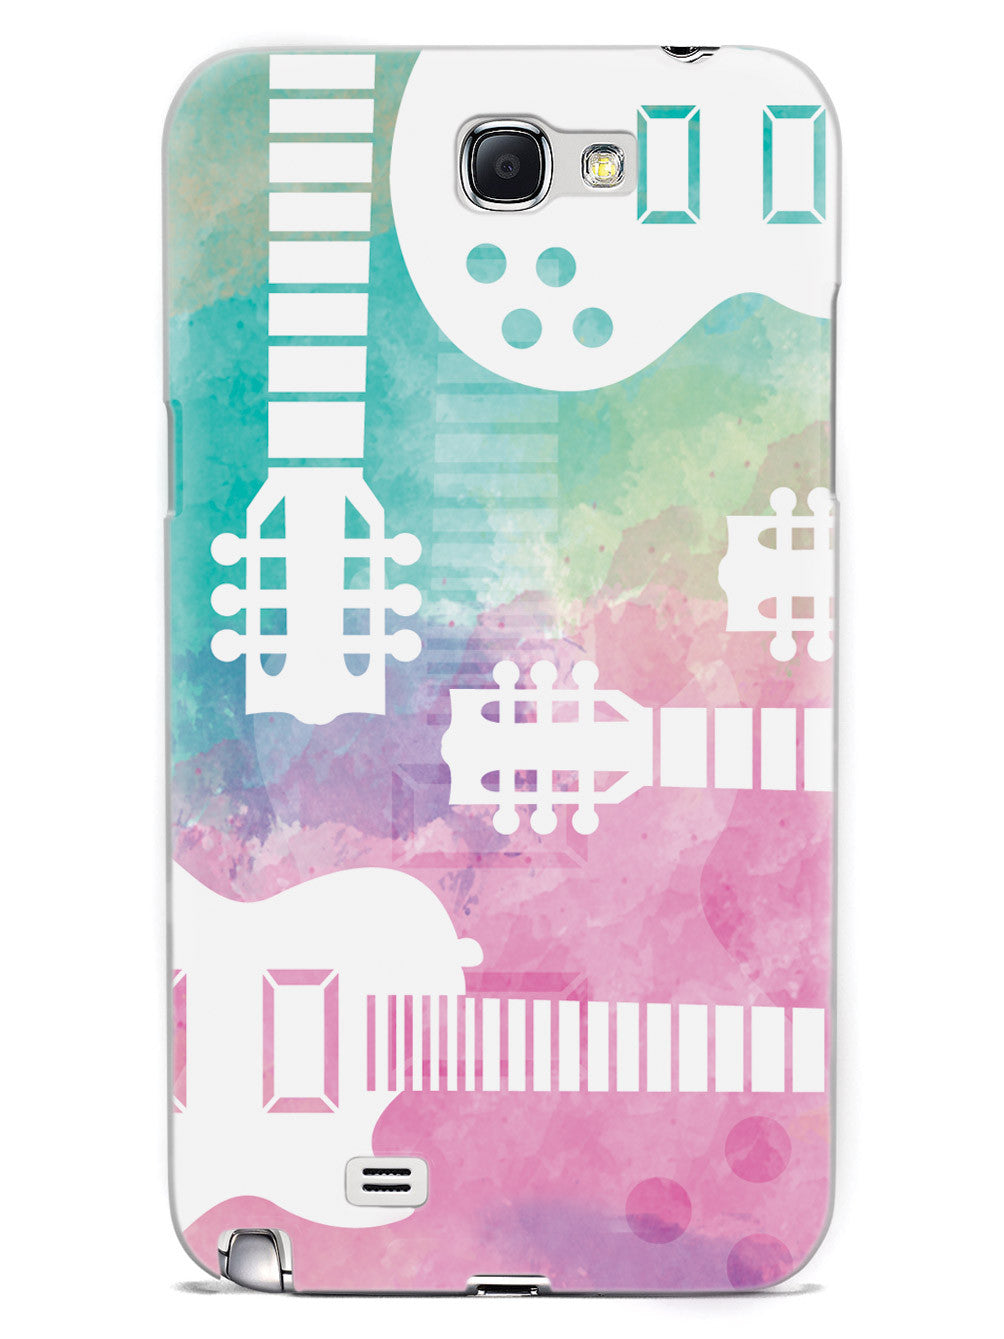 Guitar Silhouette - Watercolor Case